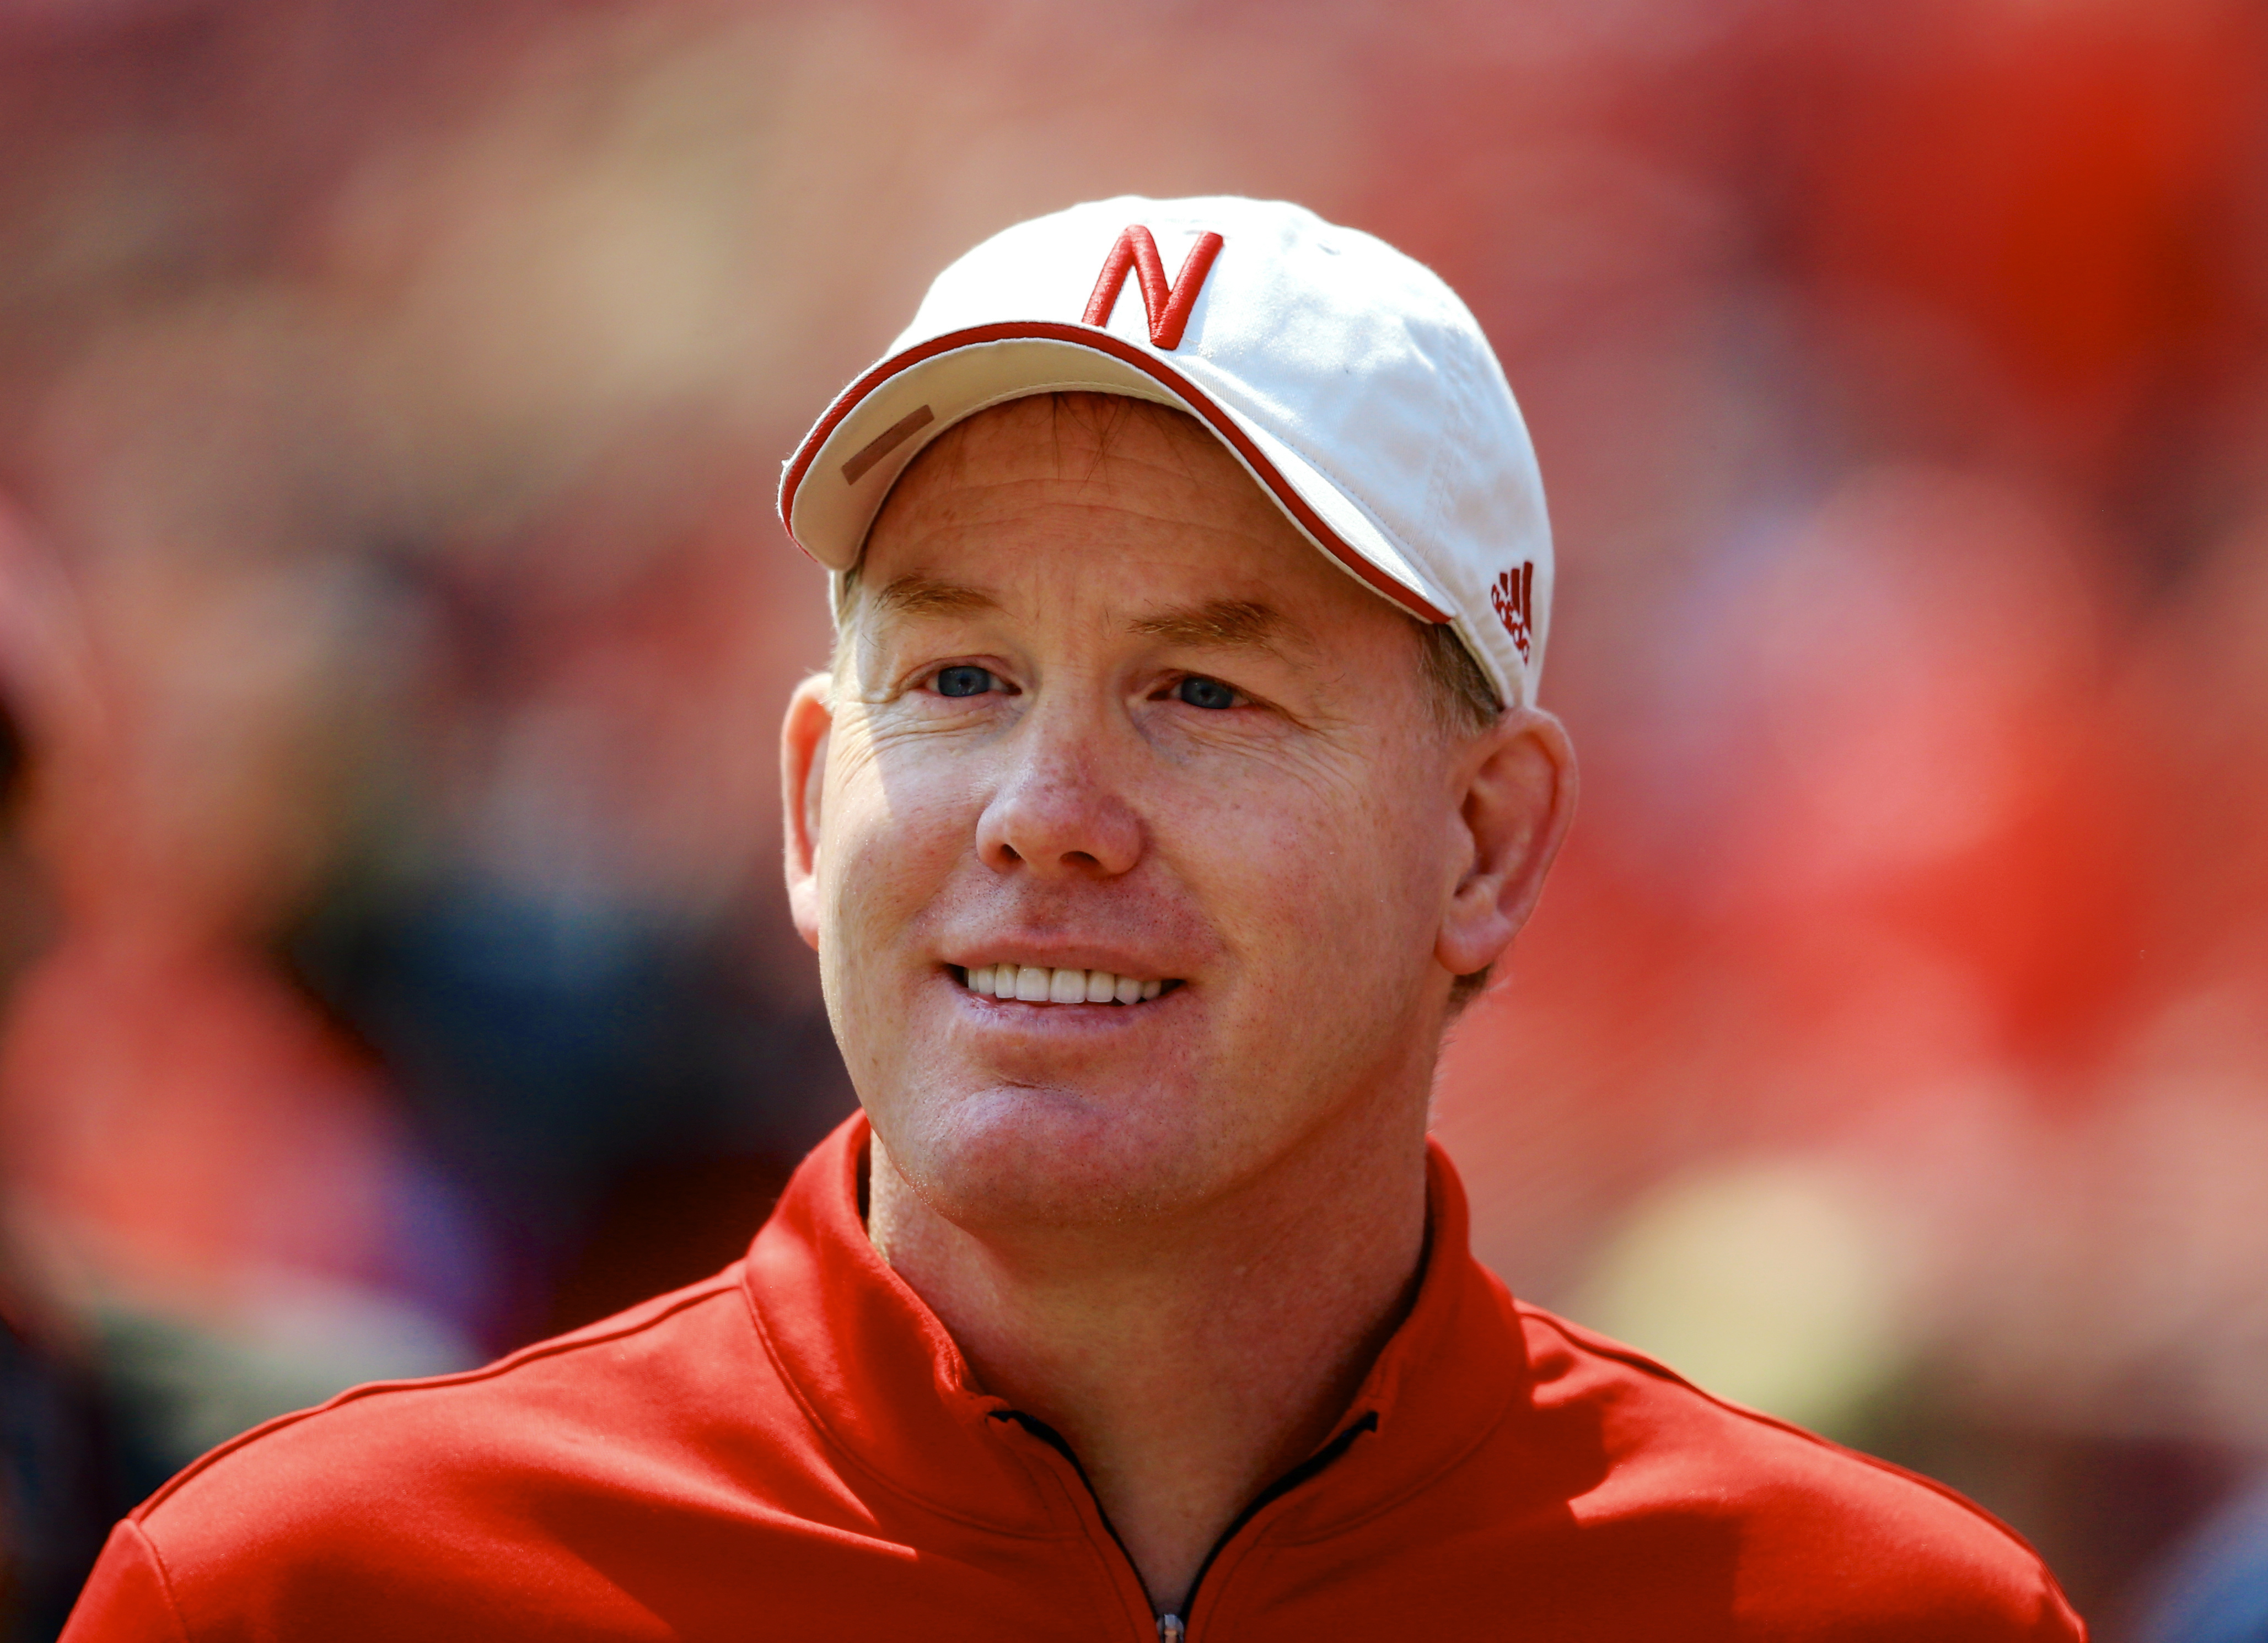 FILE - In this April 11, 2015 file photo, Nebraska Athletic Director Shawn Eichorst stands on the sidelines during a football game in Lincoln, Neb. The NCAA committee that crafted proposed football recruiting reforms, which includes the addition of early